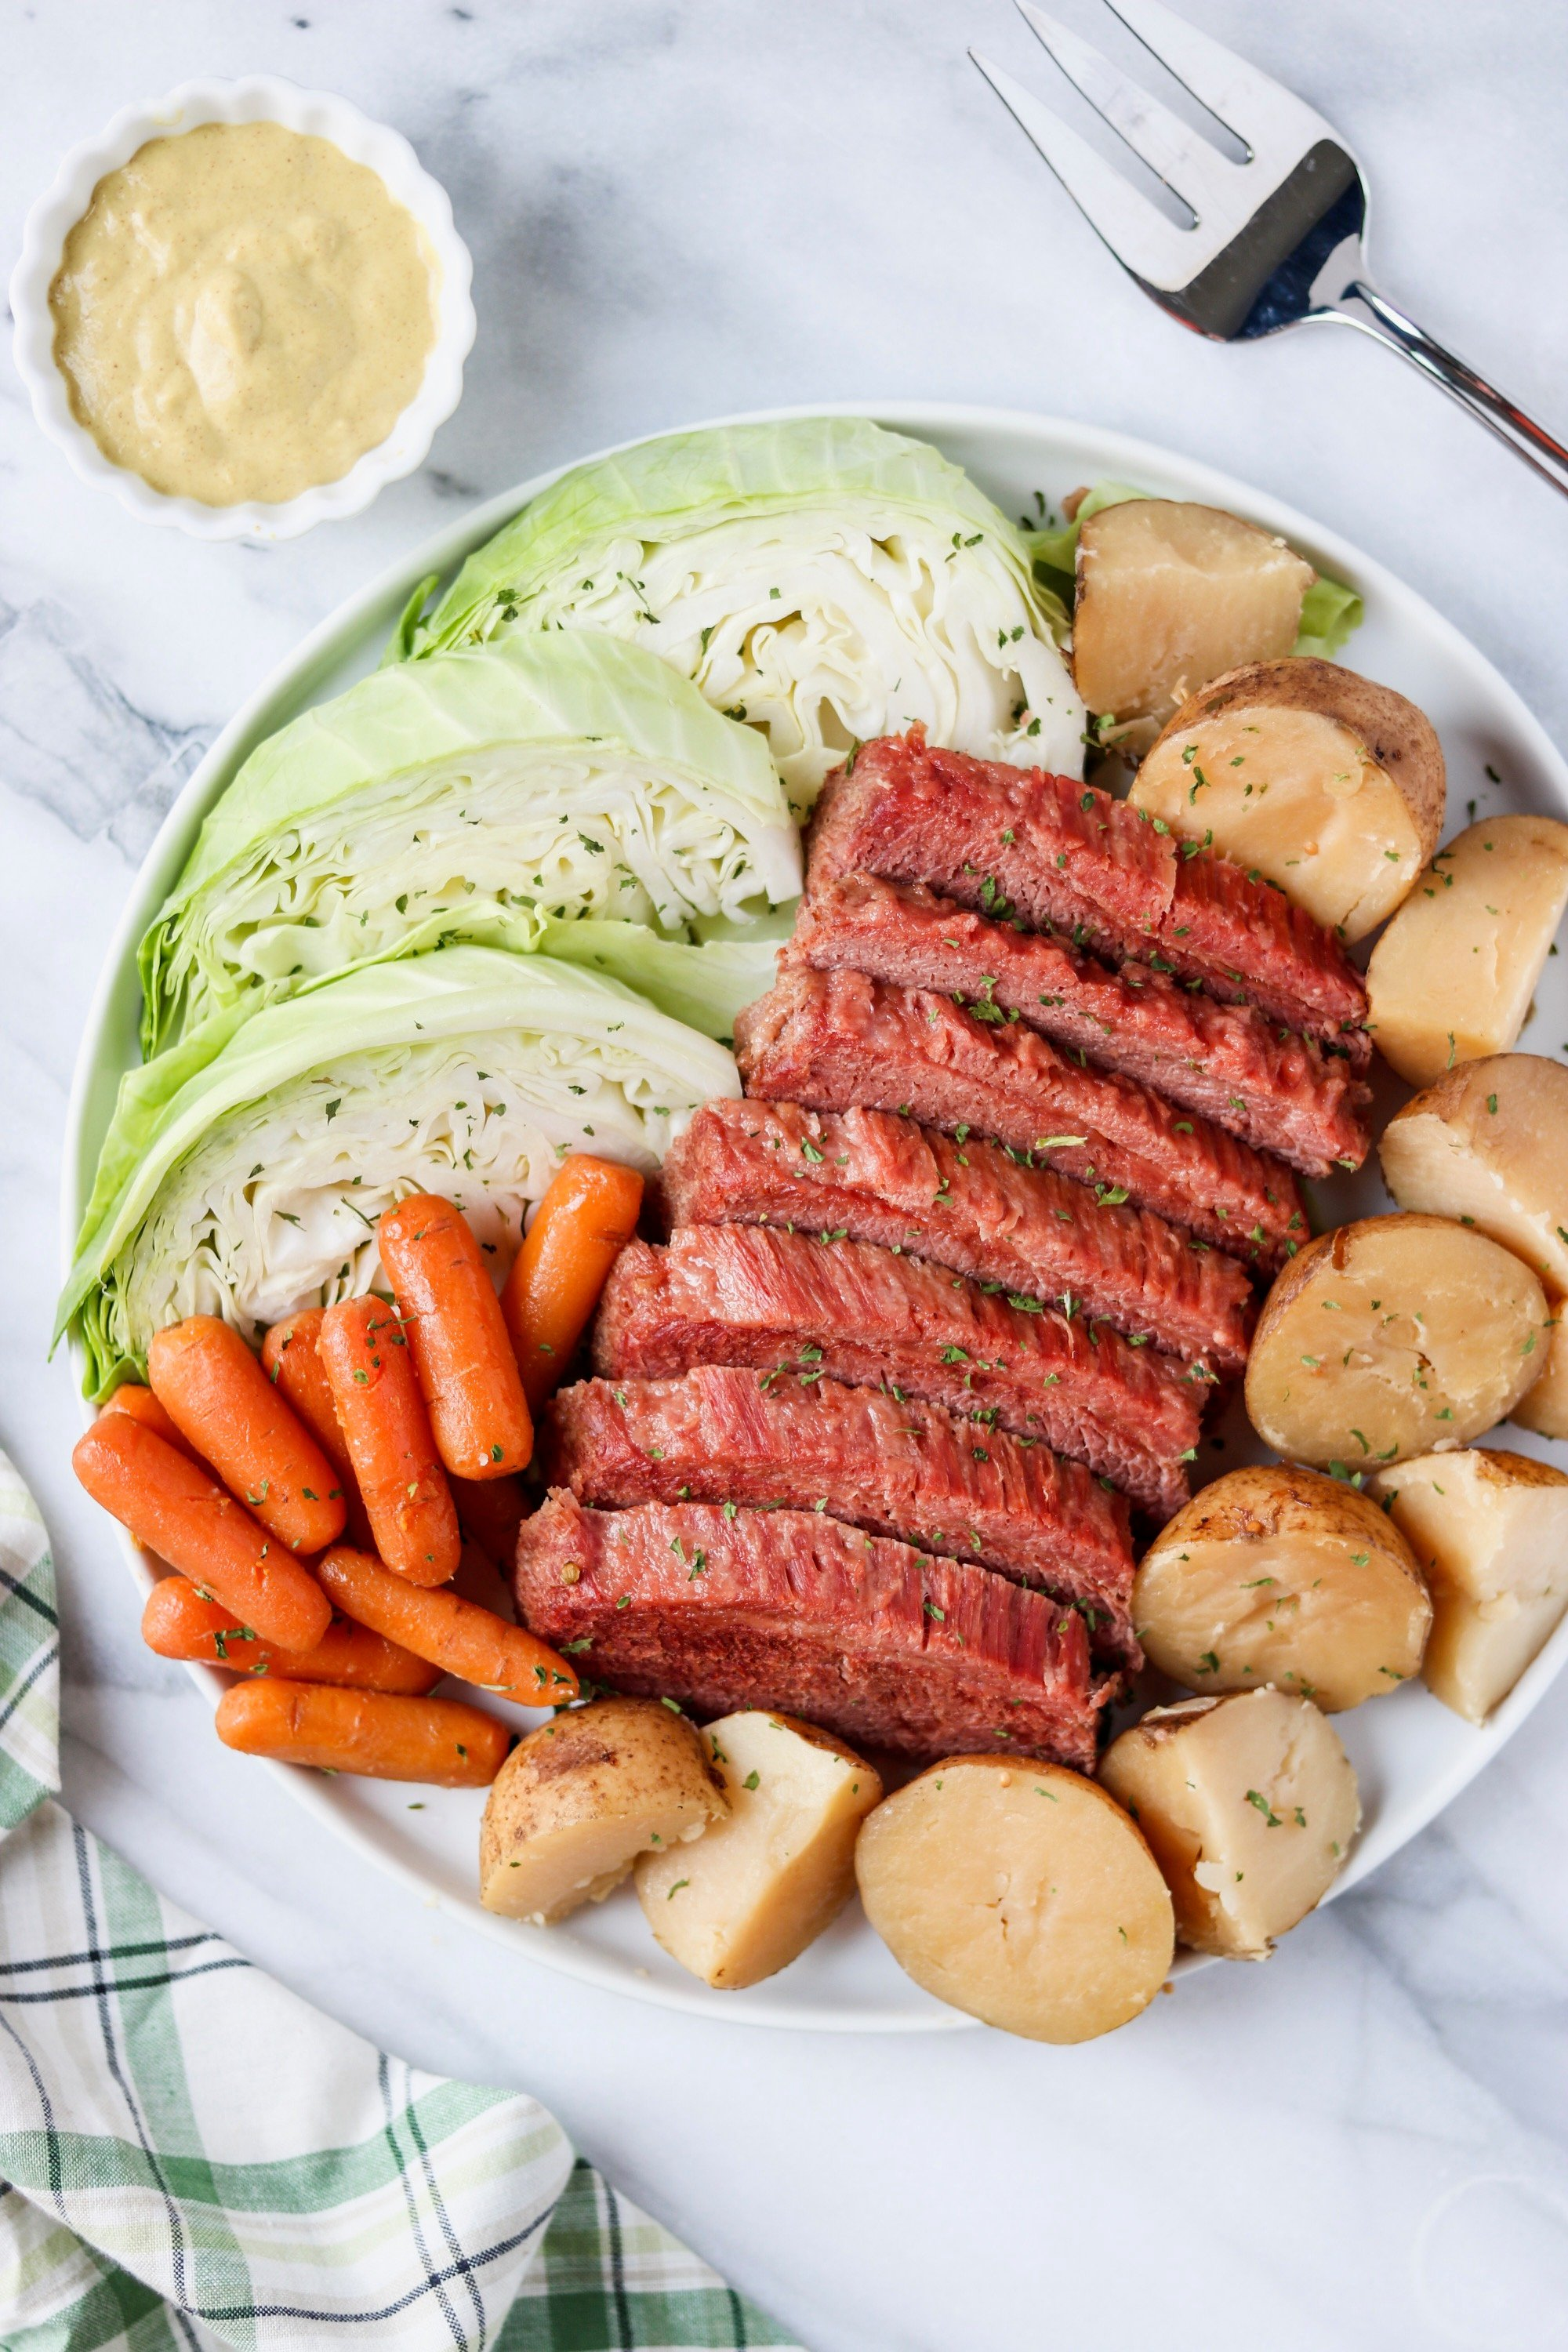 Slow Cooker Corned Beef And Cabbage Mary S Whole Life